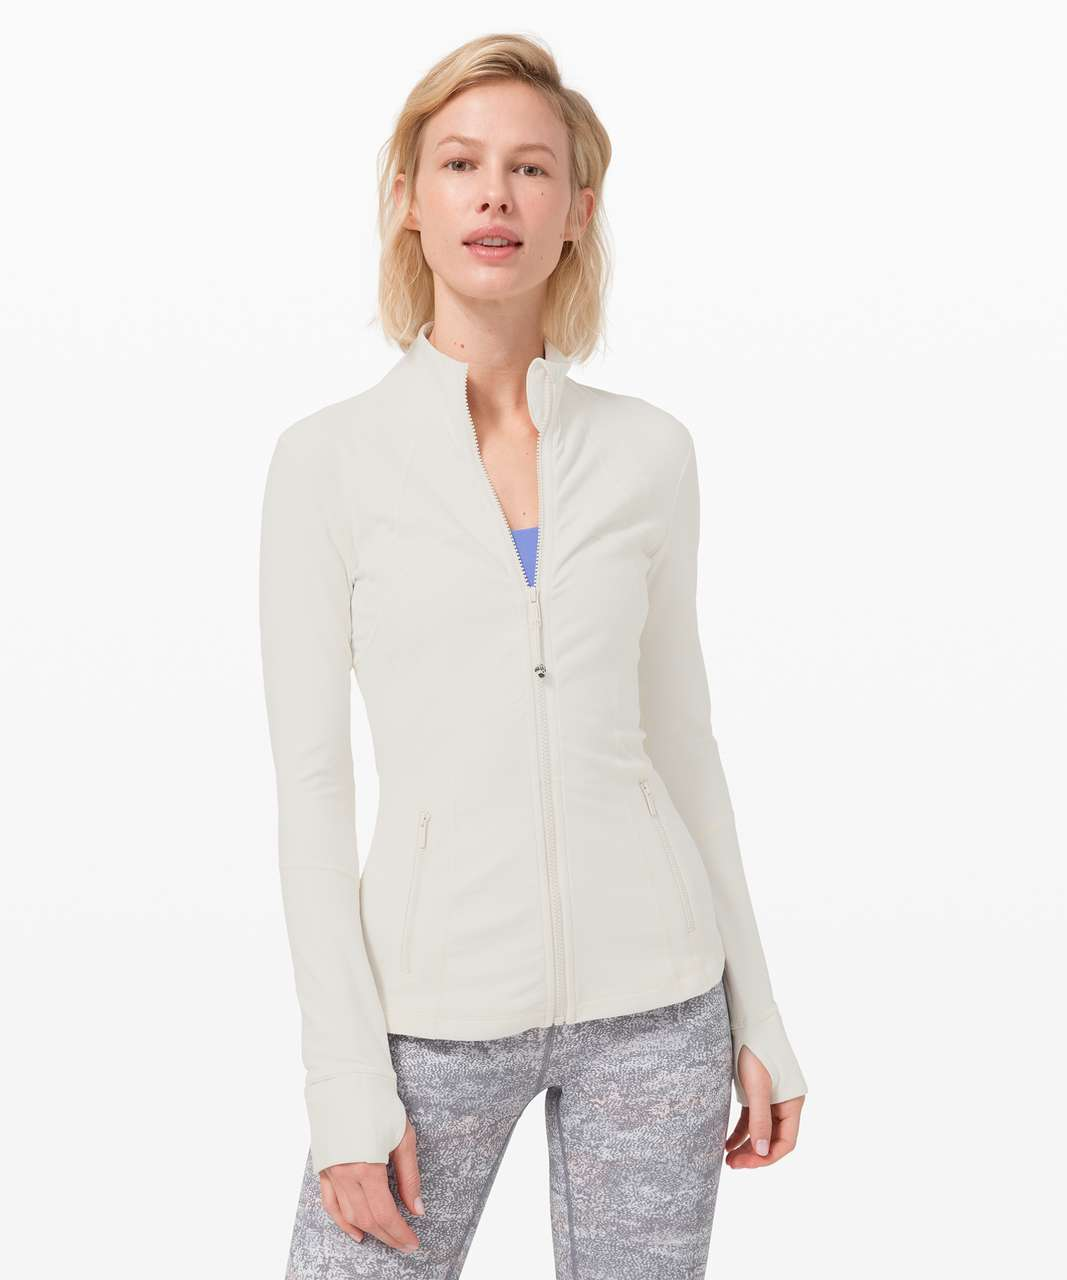 Lululemon Define Jacket *Rulu - Heathered Light Ivory